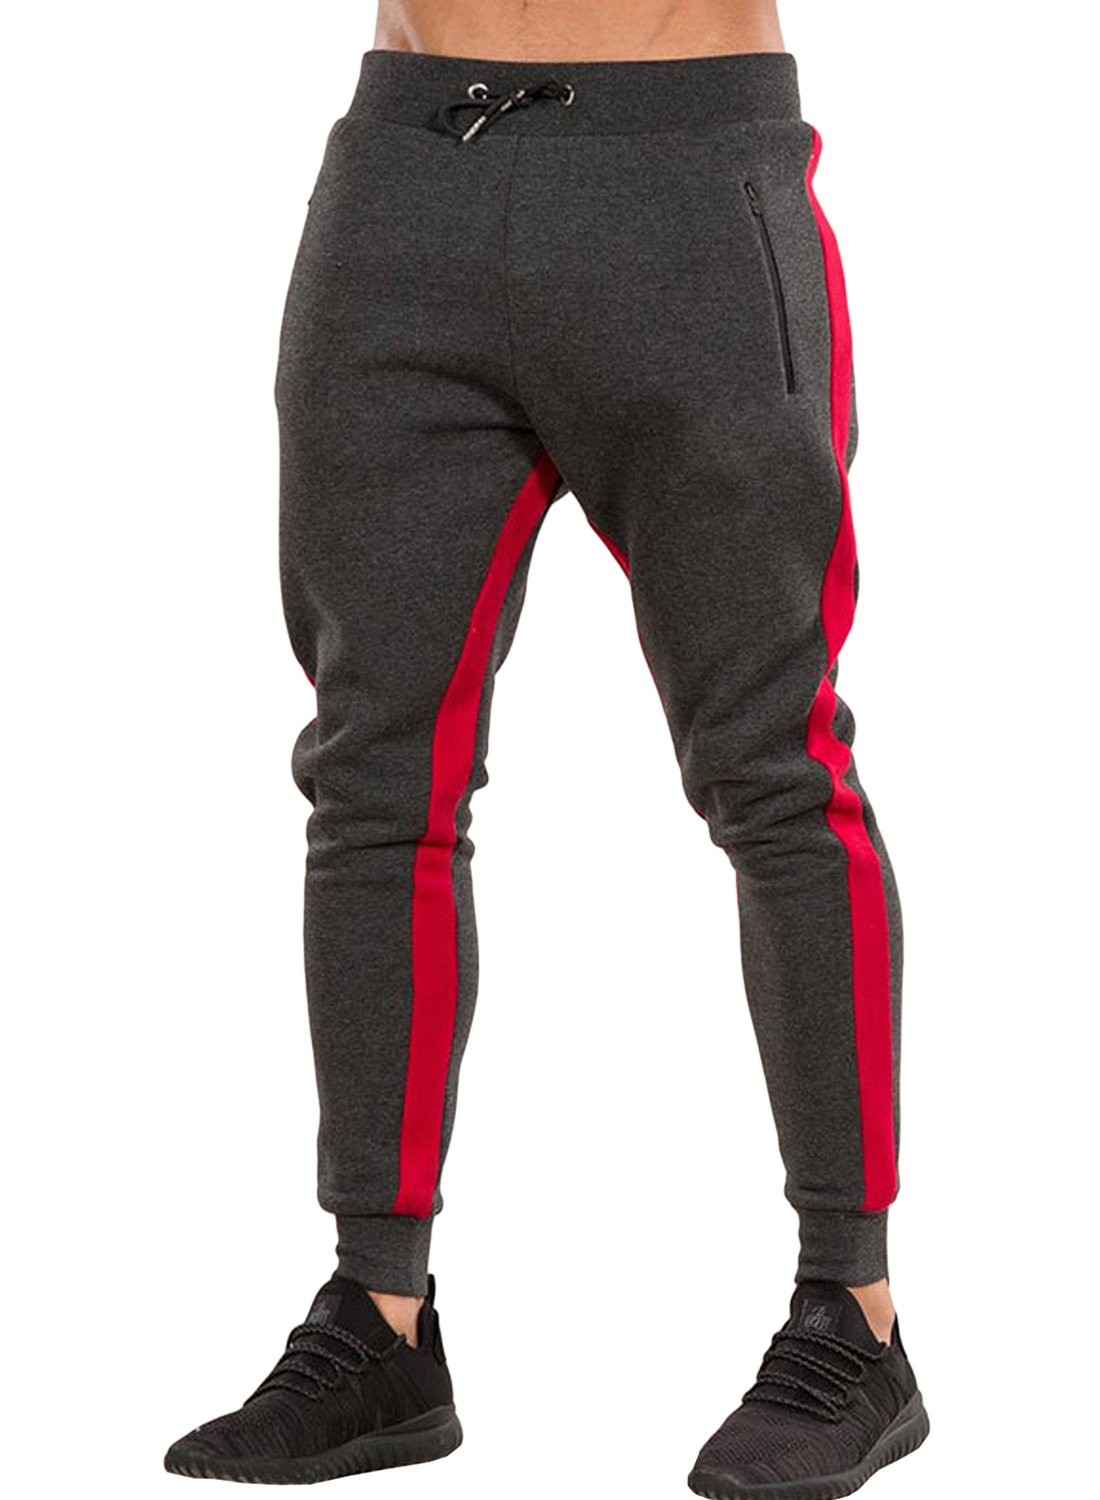 Ouber Men's Gym Jogger Pants Slim Fit Workout Running Sweatpants with Zipper Pockets (S, Red)